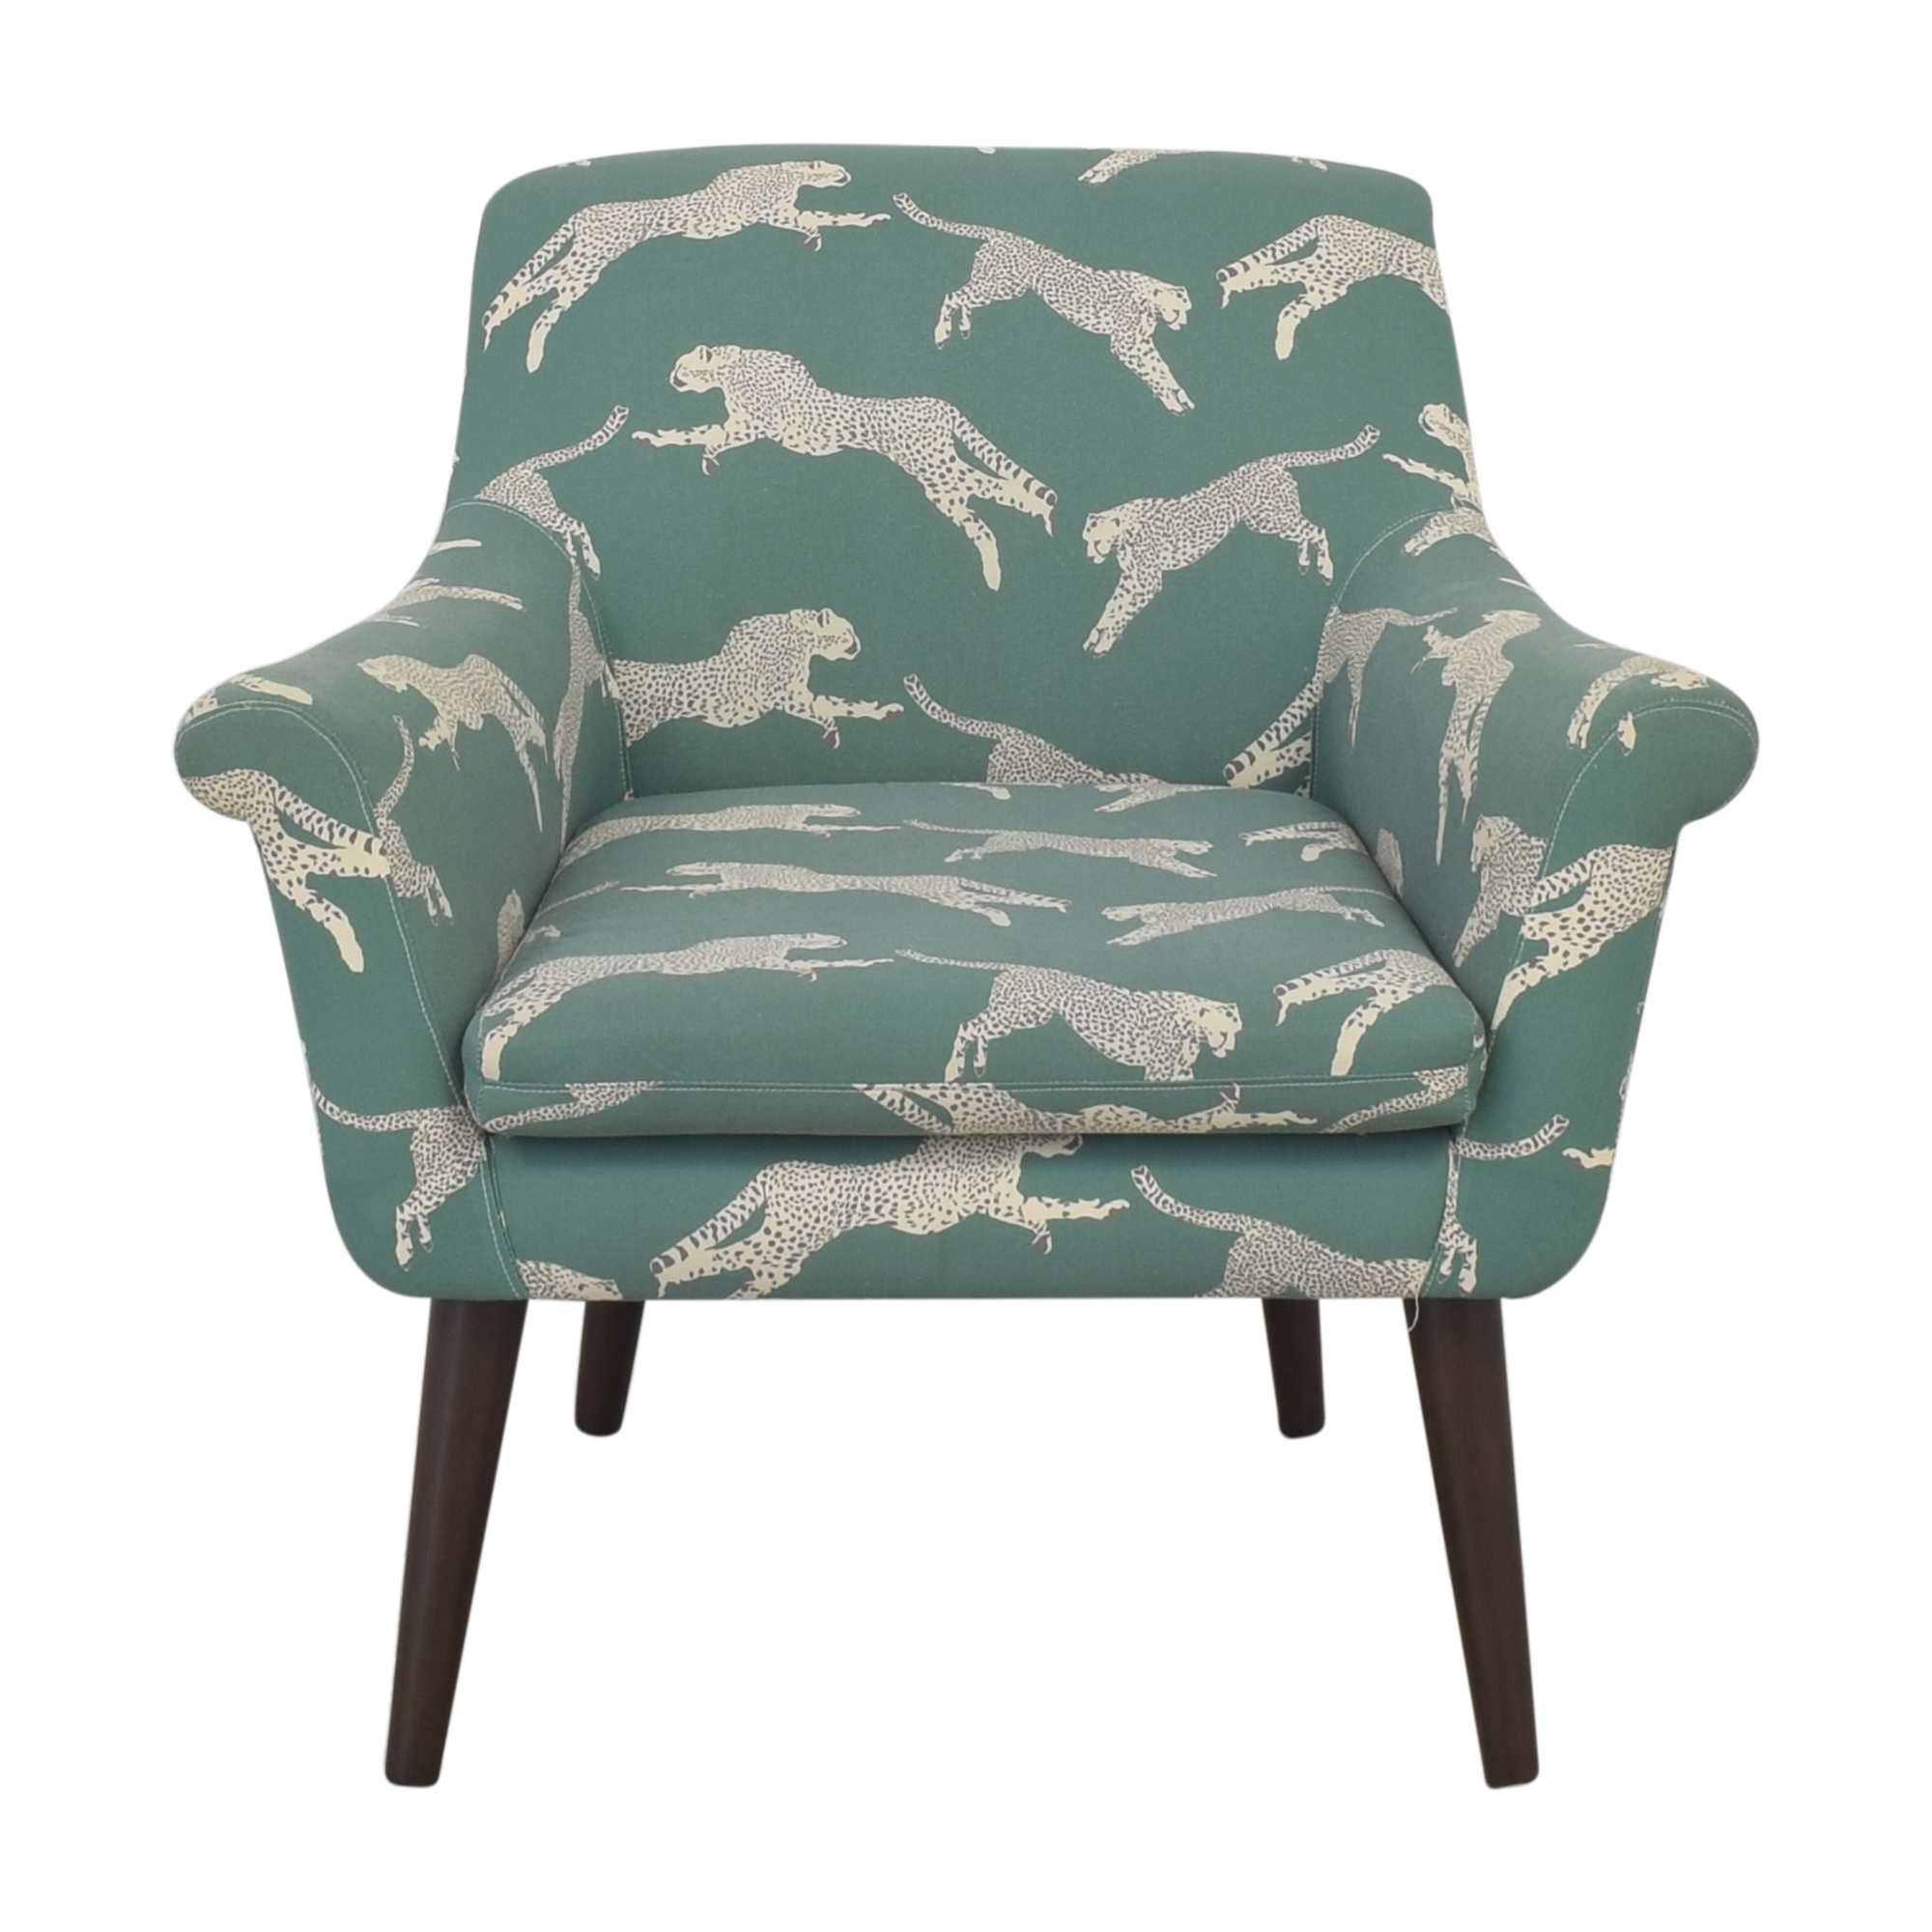 shop The Inside Polo Green Cheetah Cocktail Chair The Inside Accent Chairs